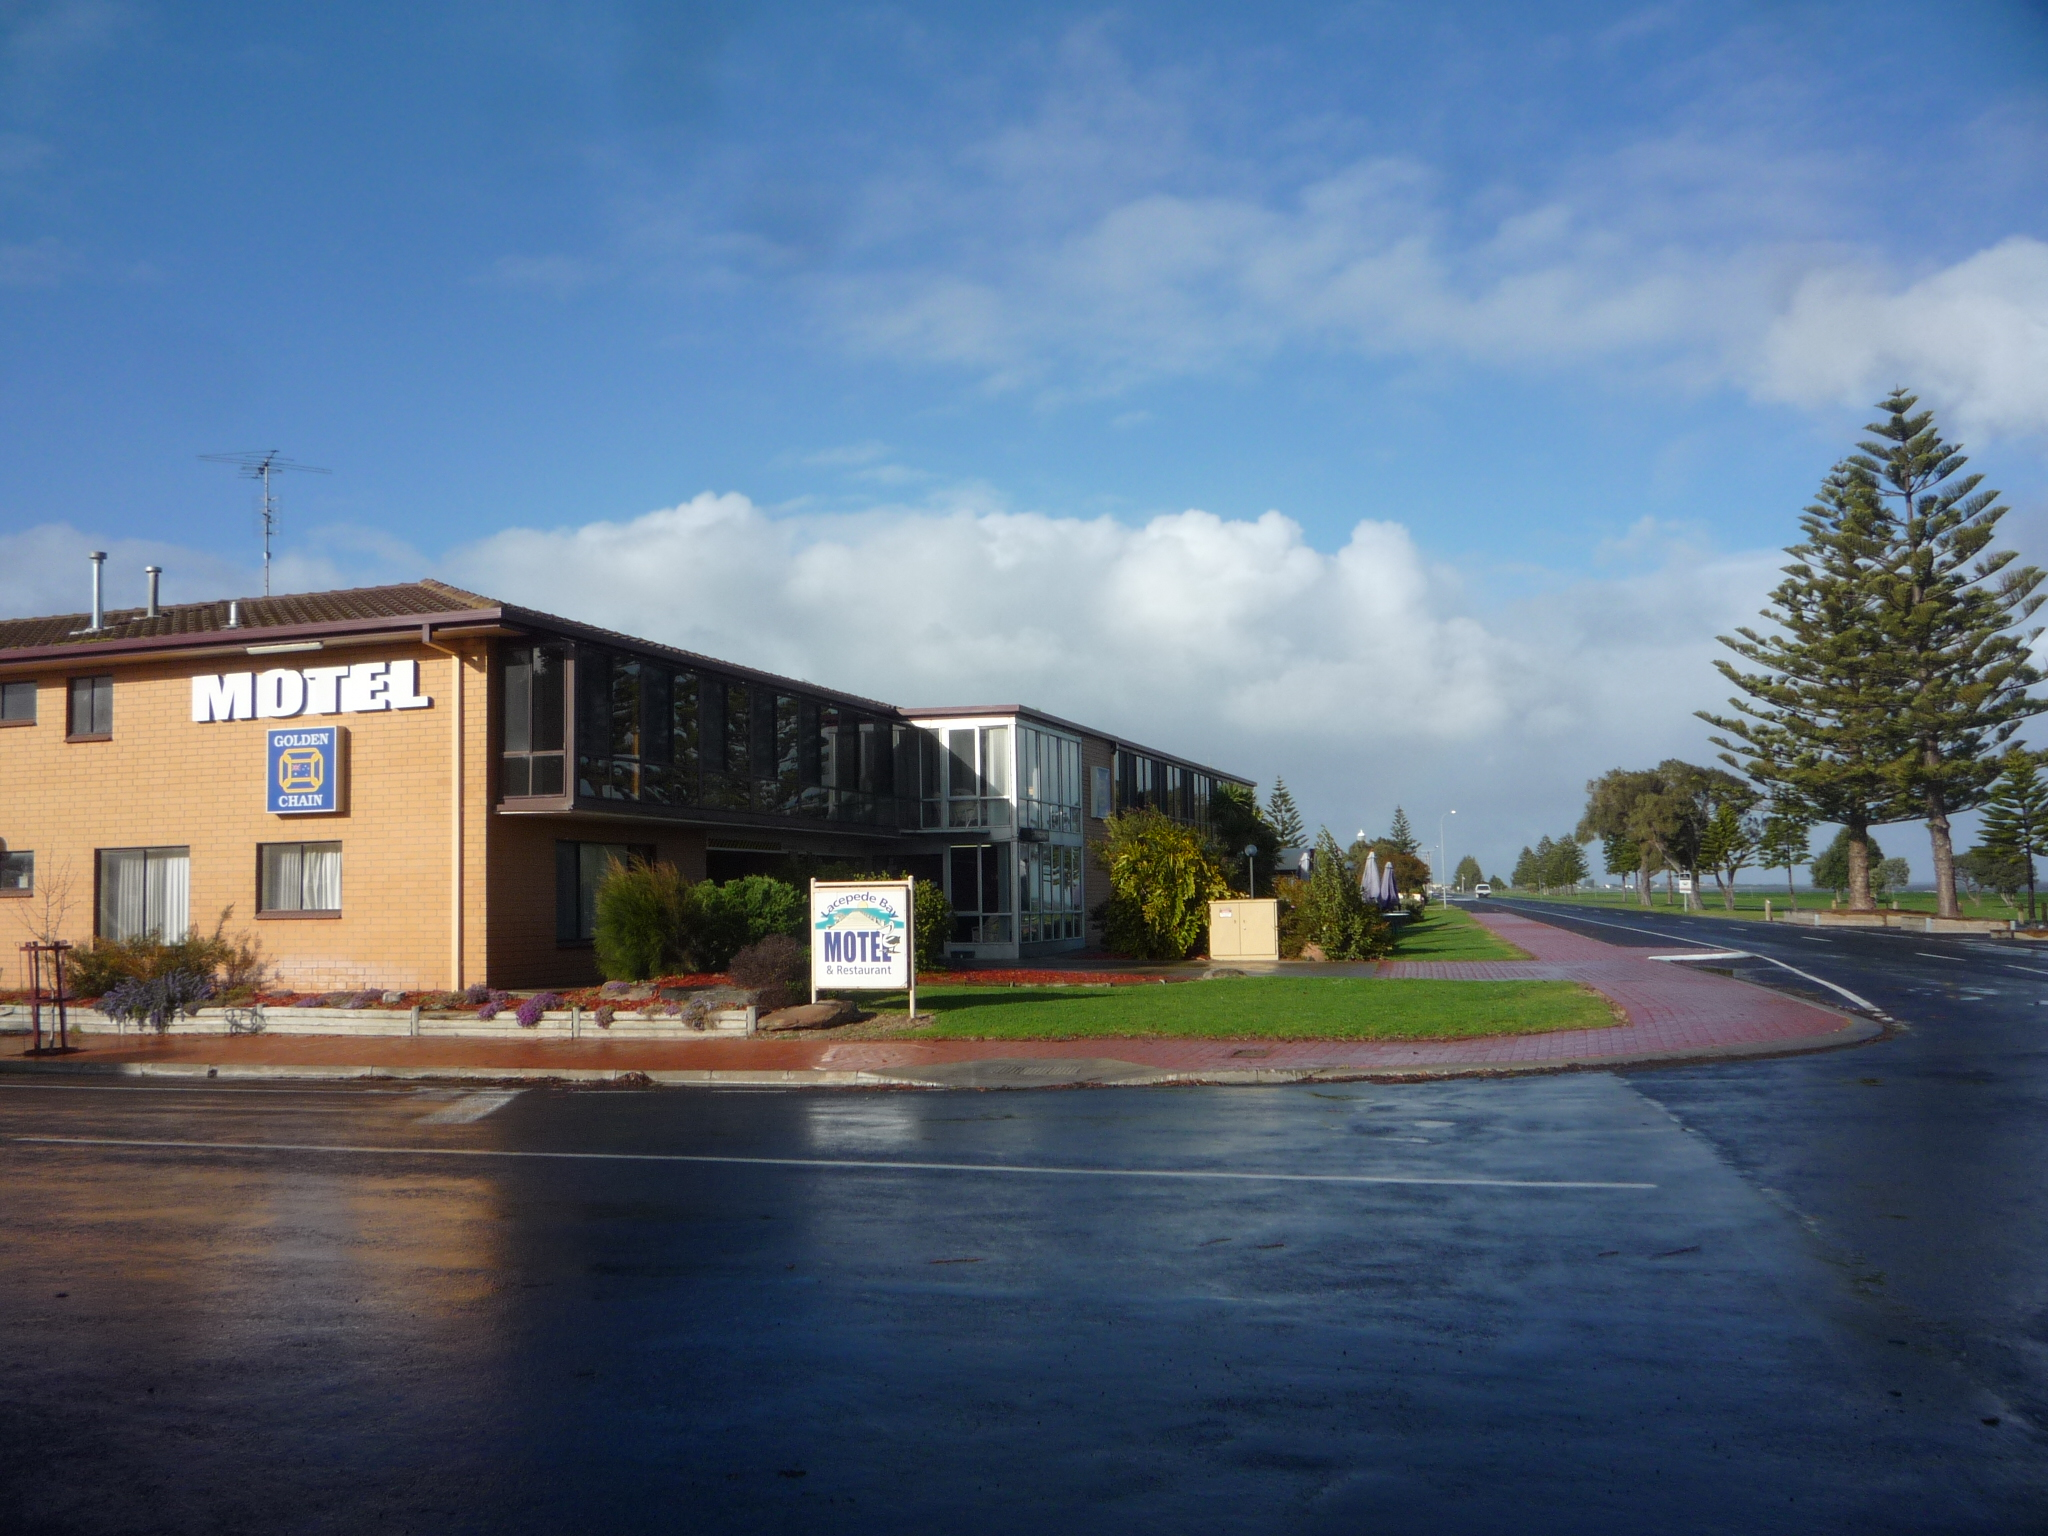 Lacepede Bay Motel And Restaurant - Tourism Canberra